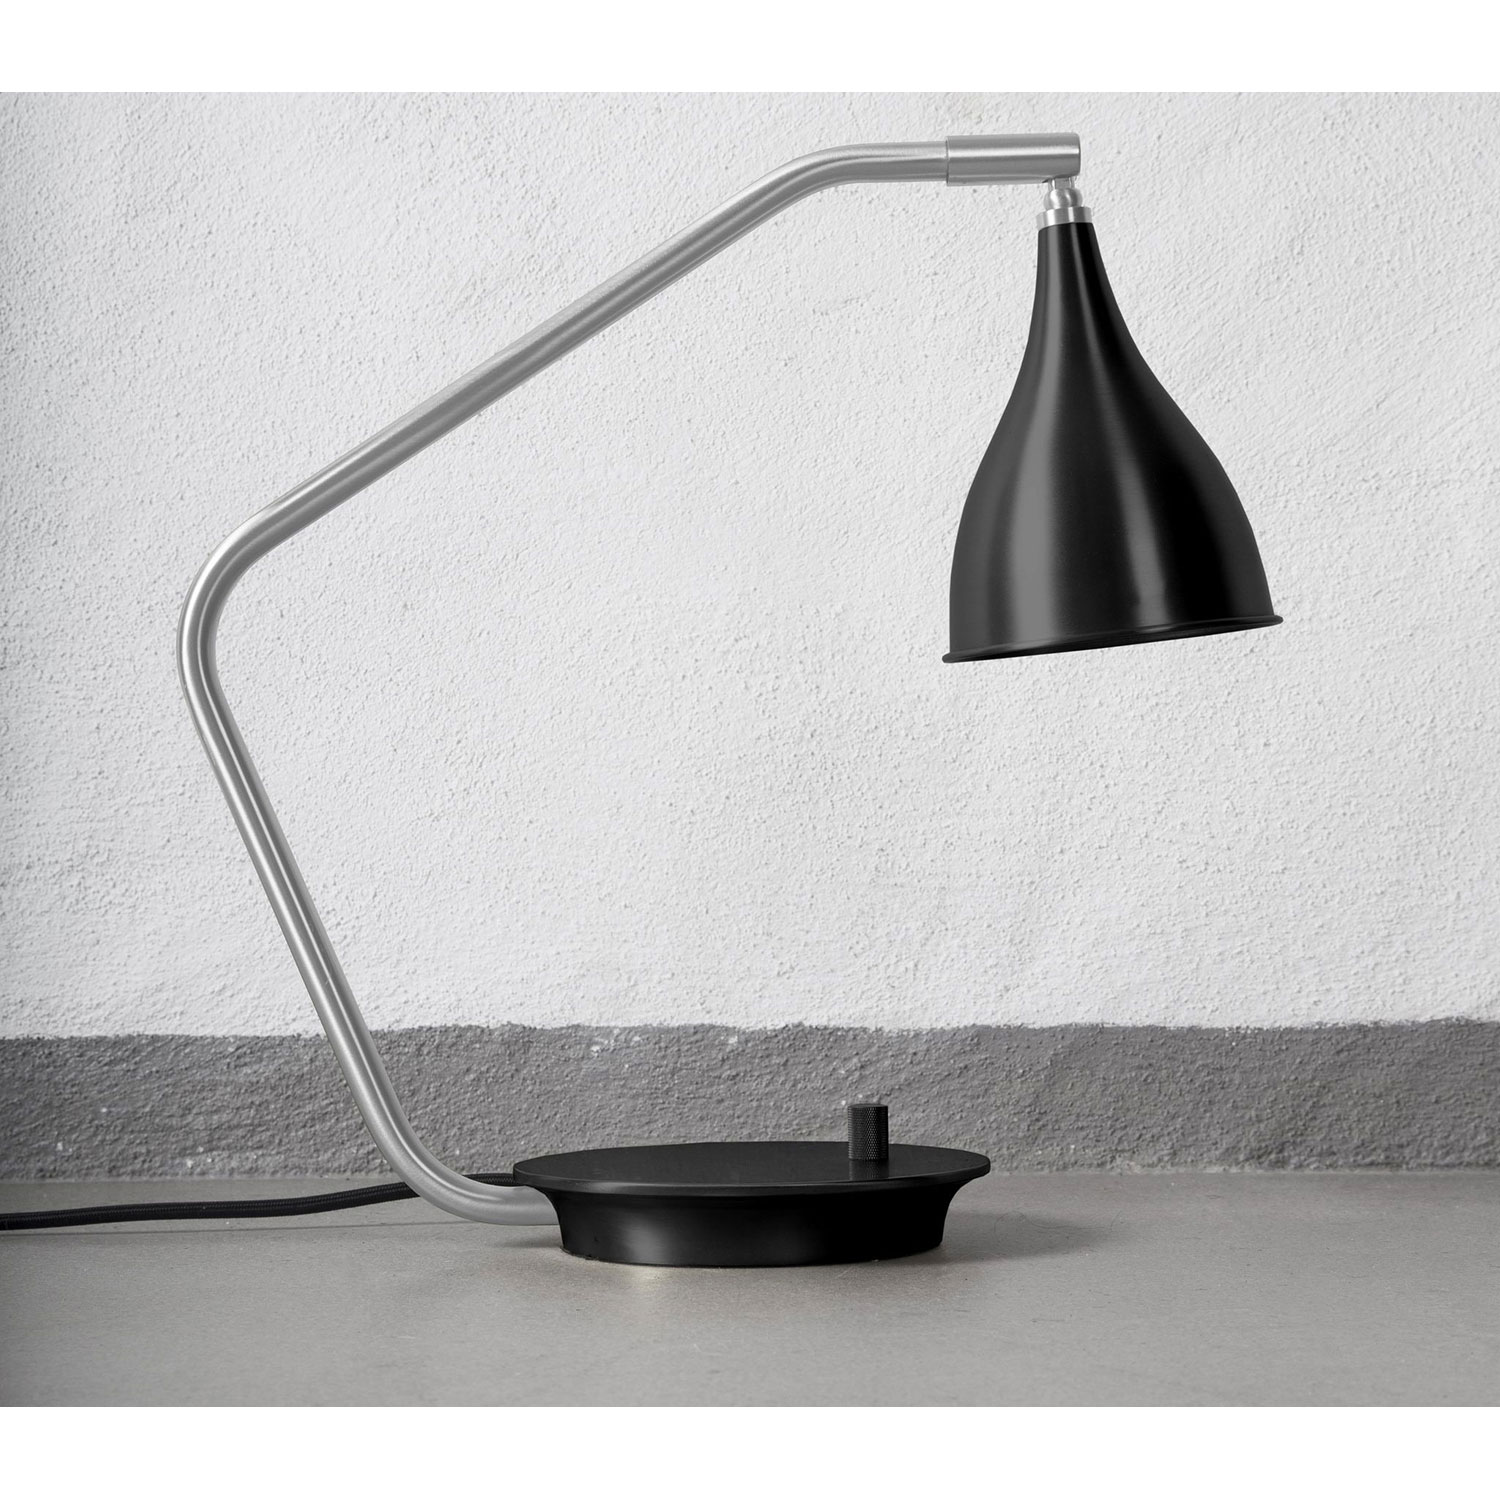 Le Six table lamp bordslampa, svart